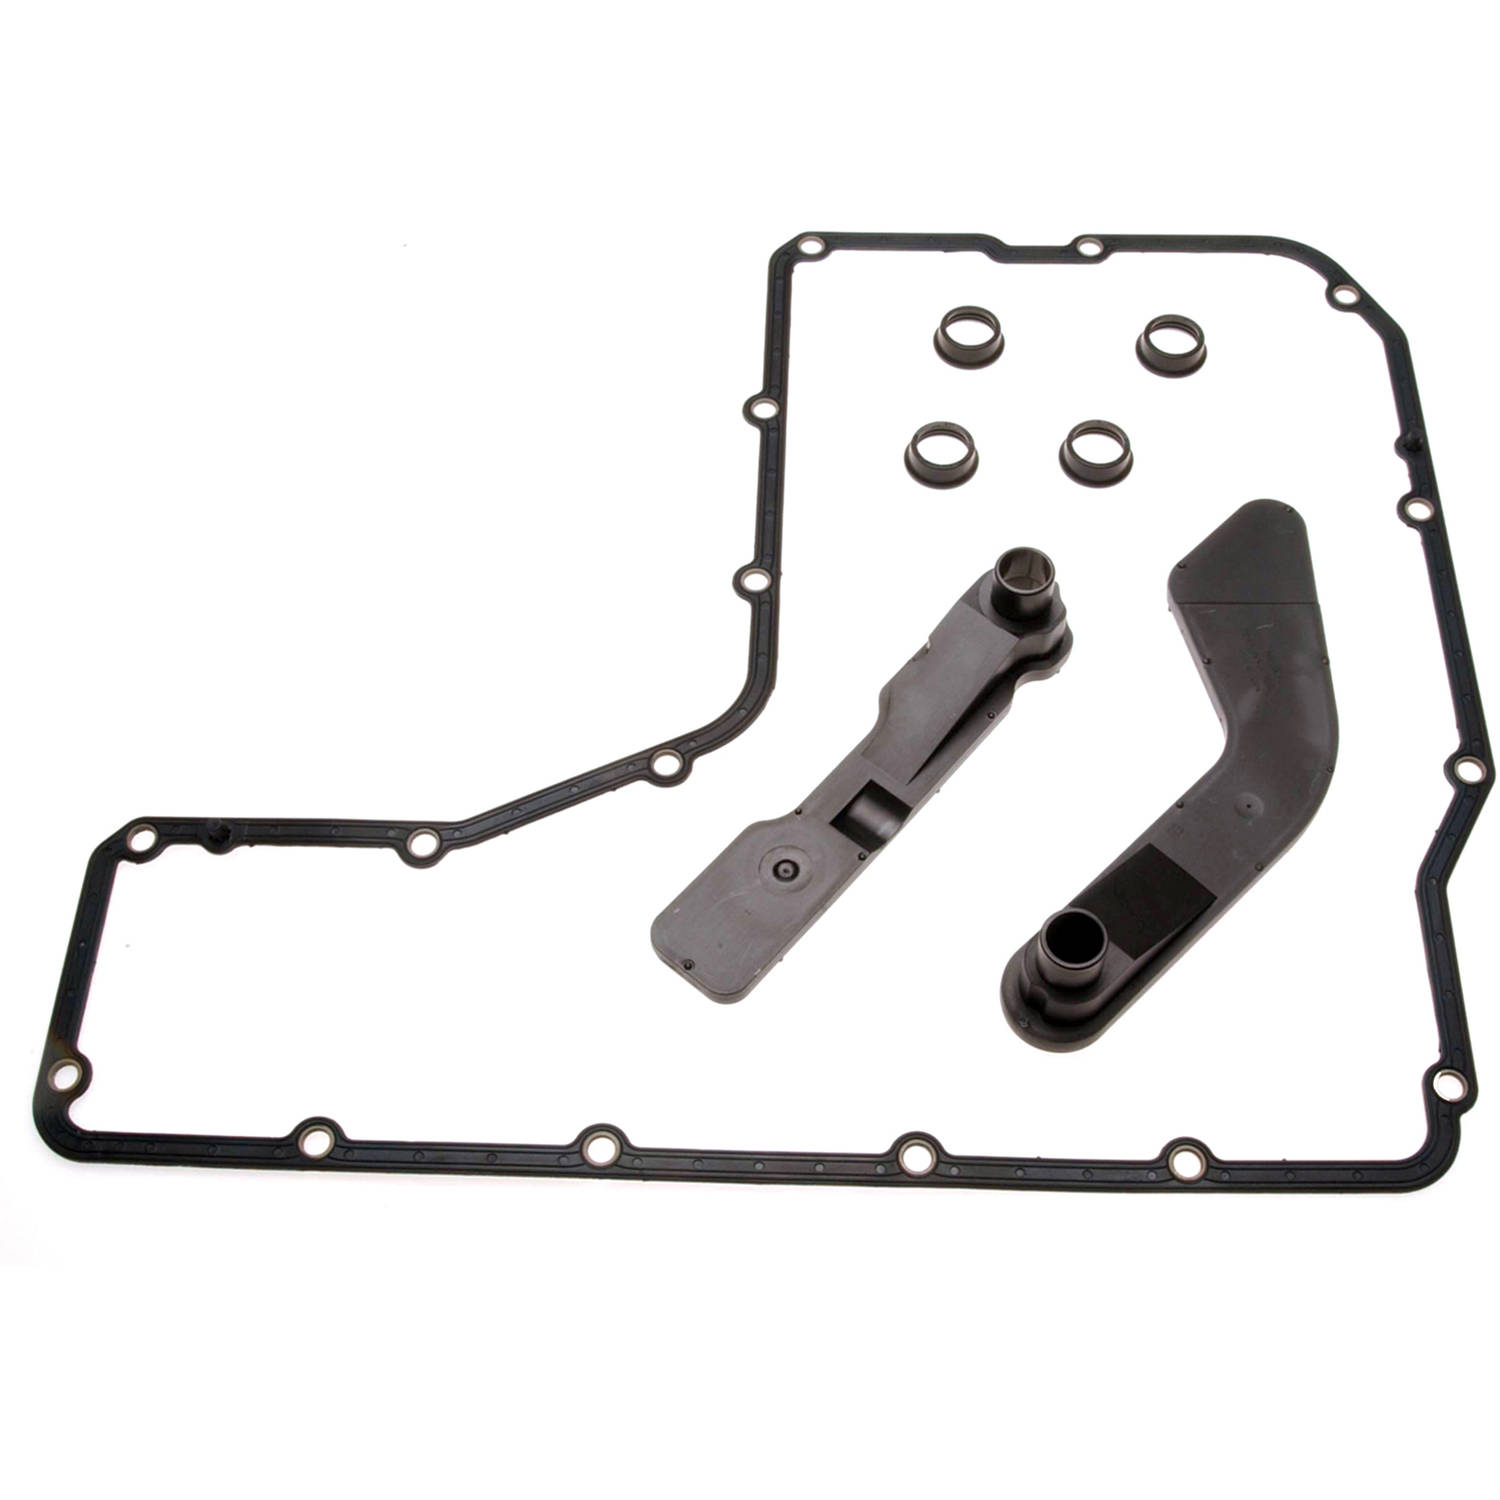 ACDelco Transmission Filter, #24216035